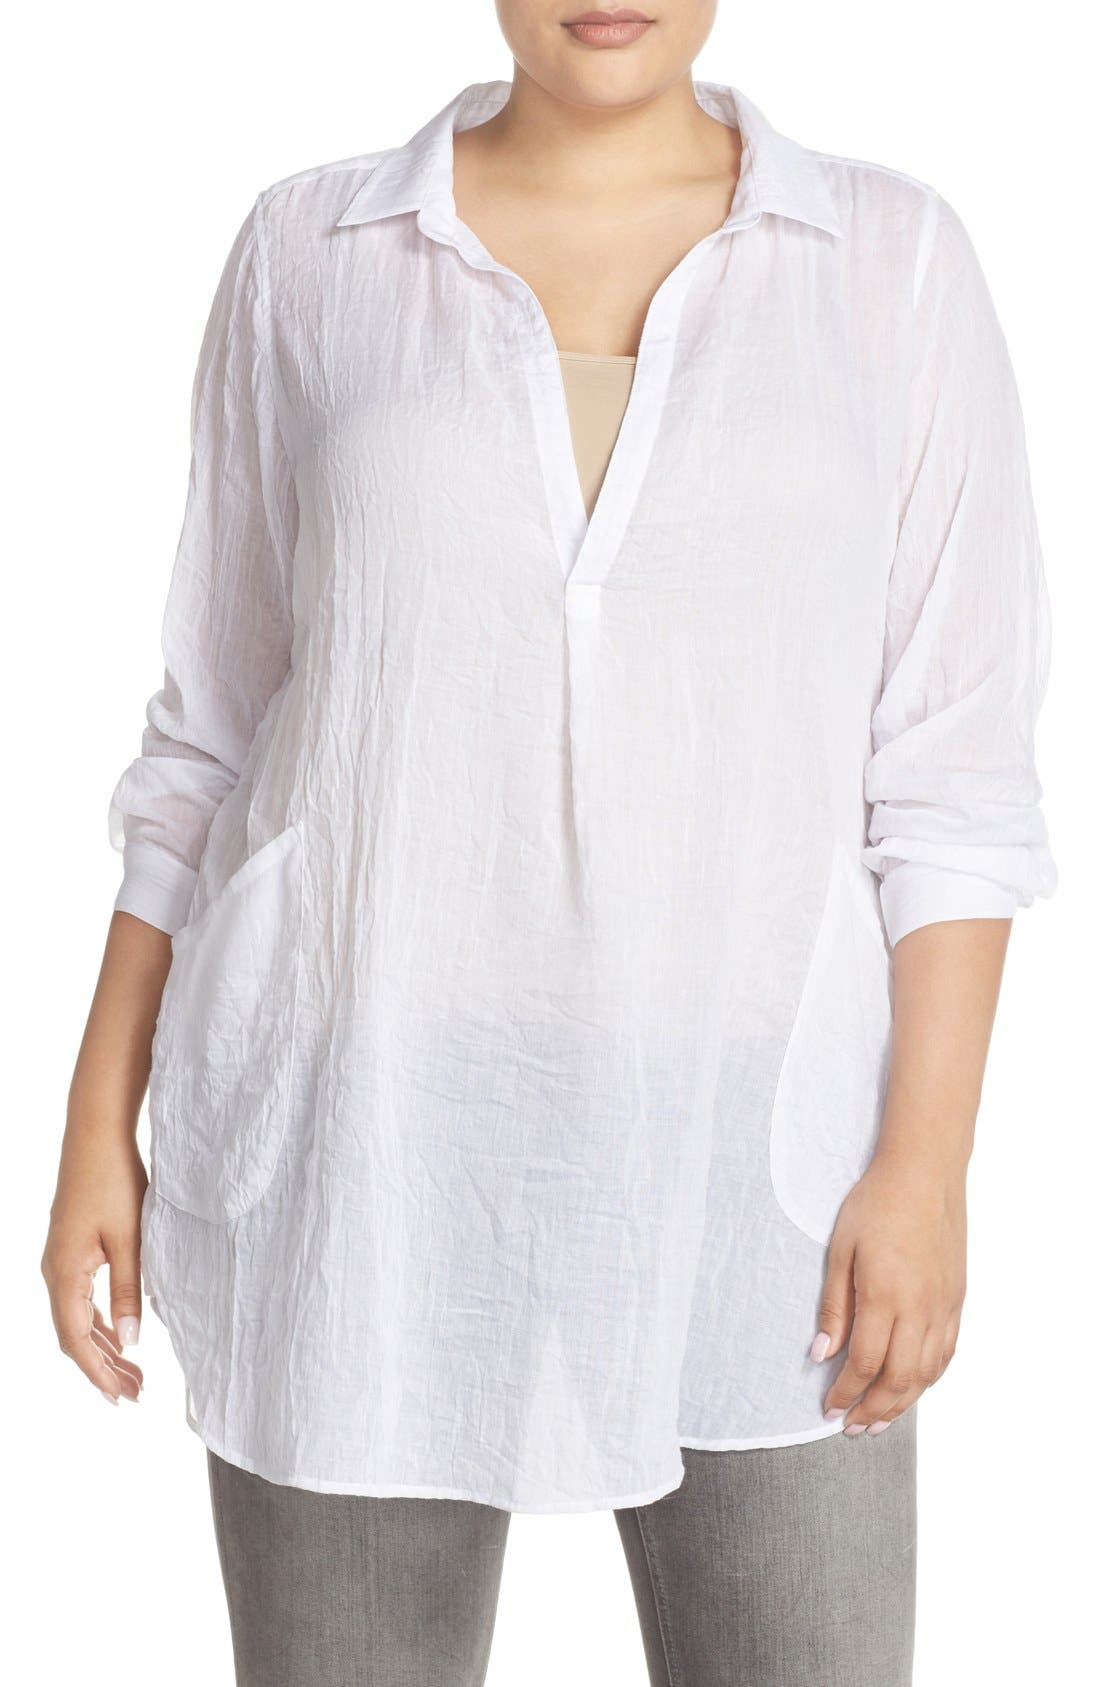 Main Image - Melissa McCarthy Seven7 Patch Pocket Tunic Shirt (Plus Size)